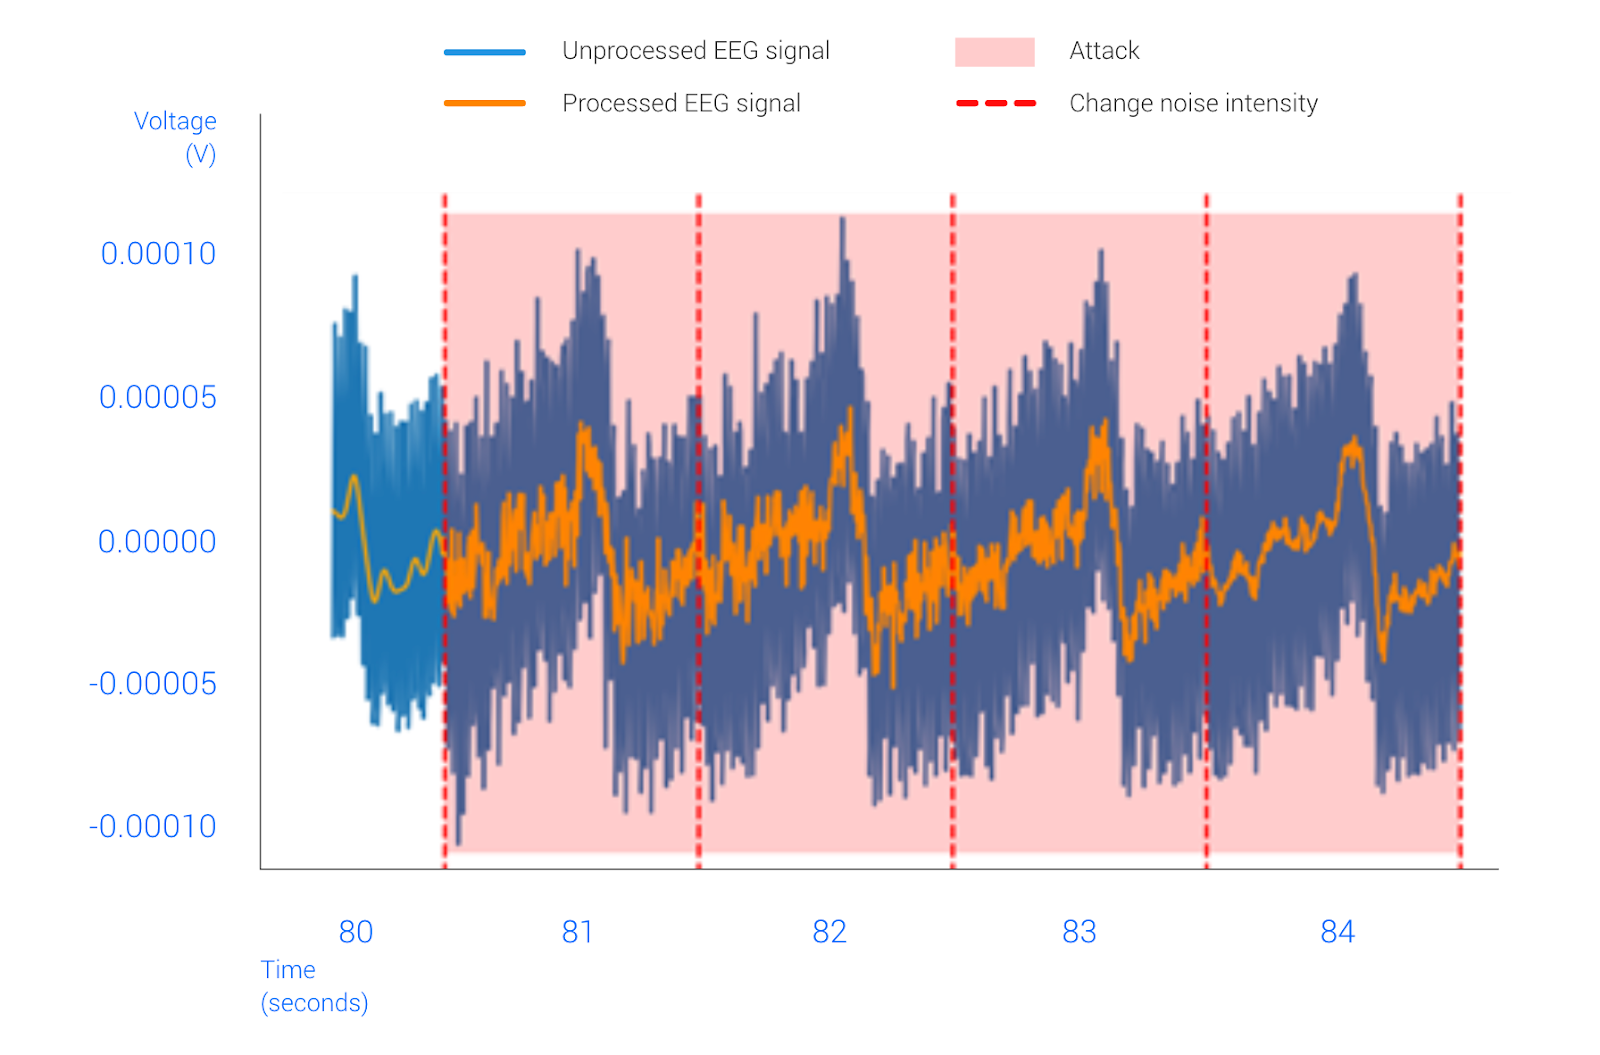 Figure 4: Noise-based cyberattack against the EEG